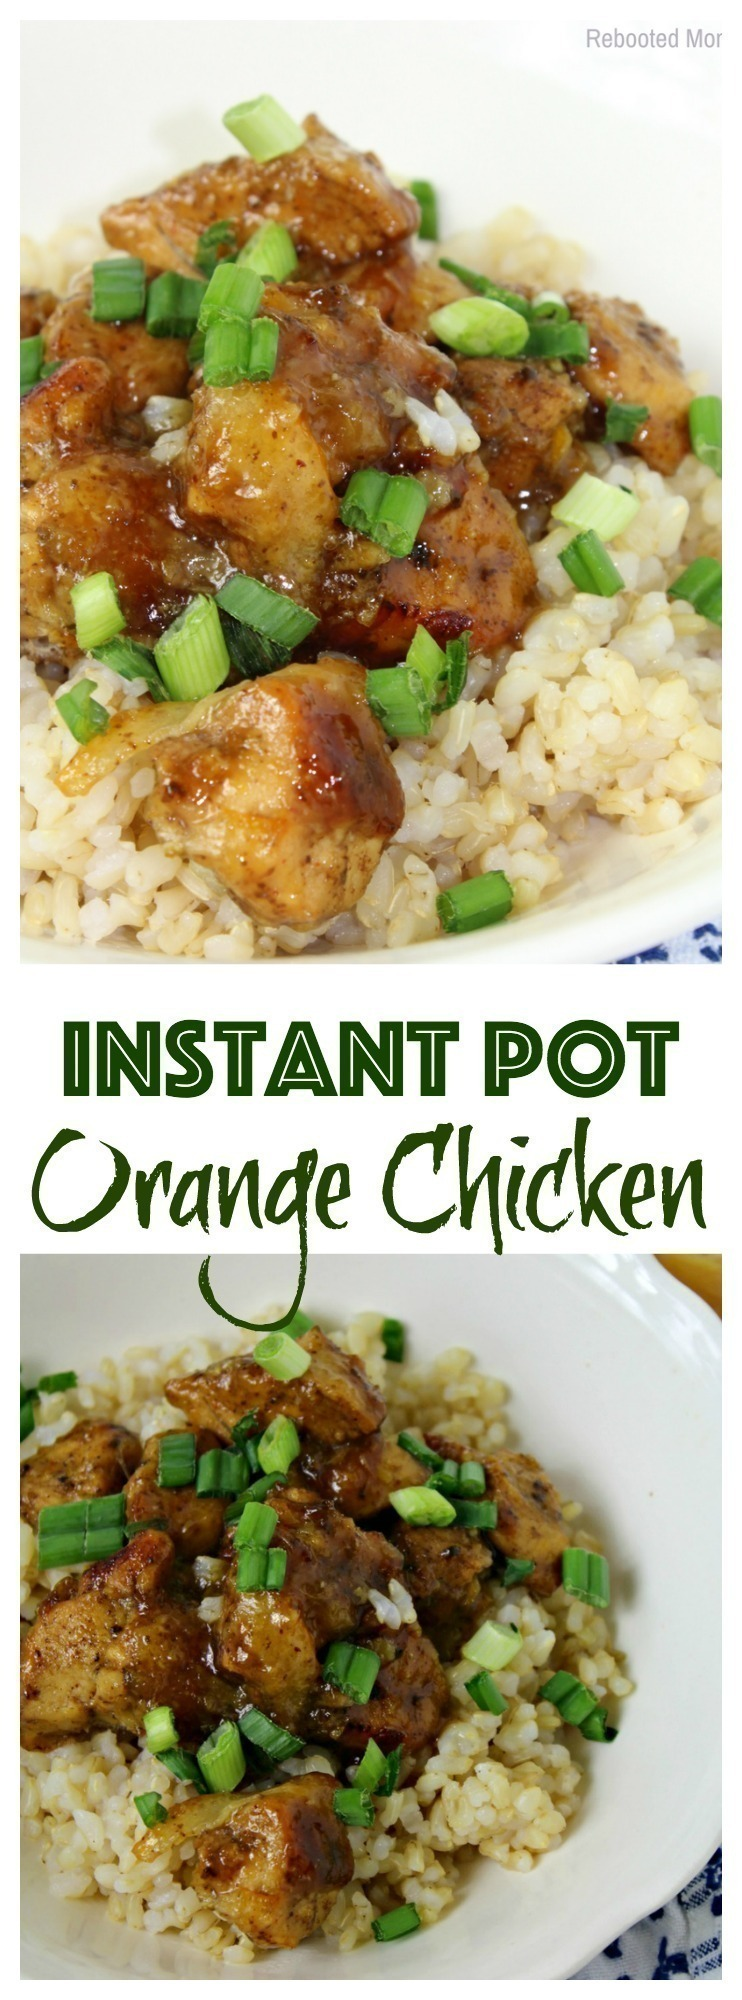 Instant Pot Orange Chicken is healthier than takeout and easy to make using your Instant Pot. Combine simple, fresh ingredients to make this recipe in less than 20 minutes!